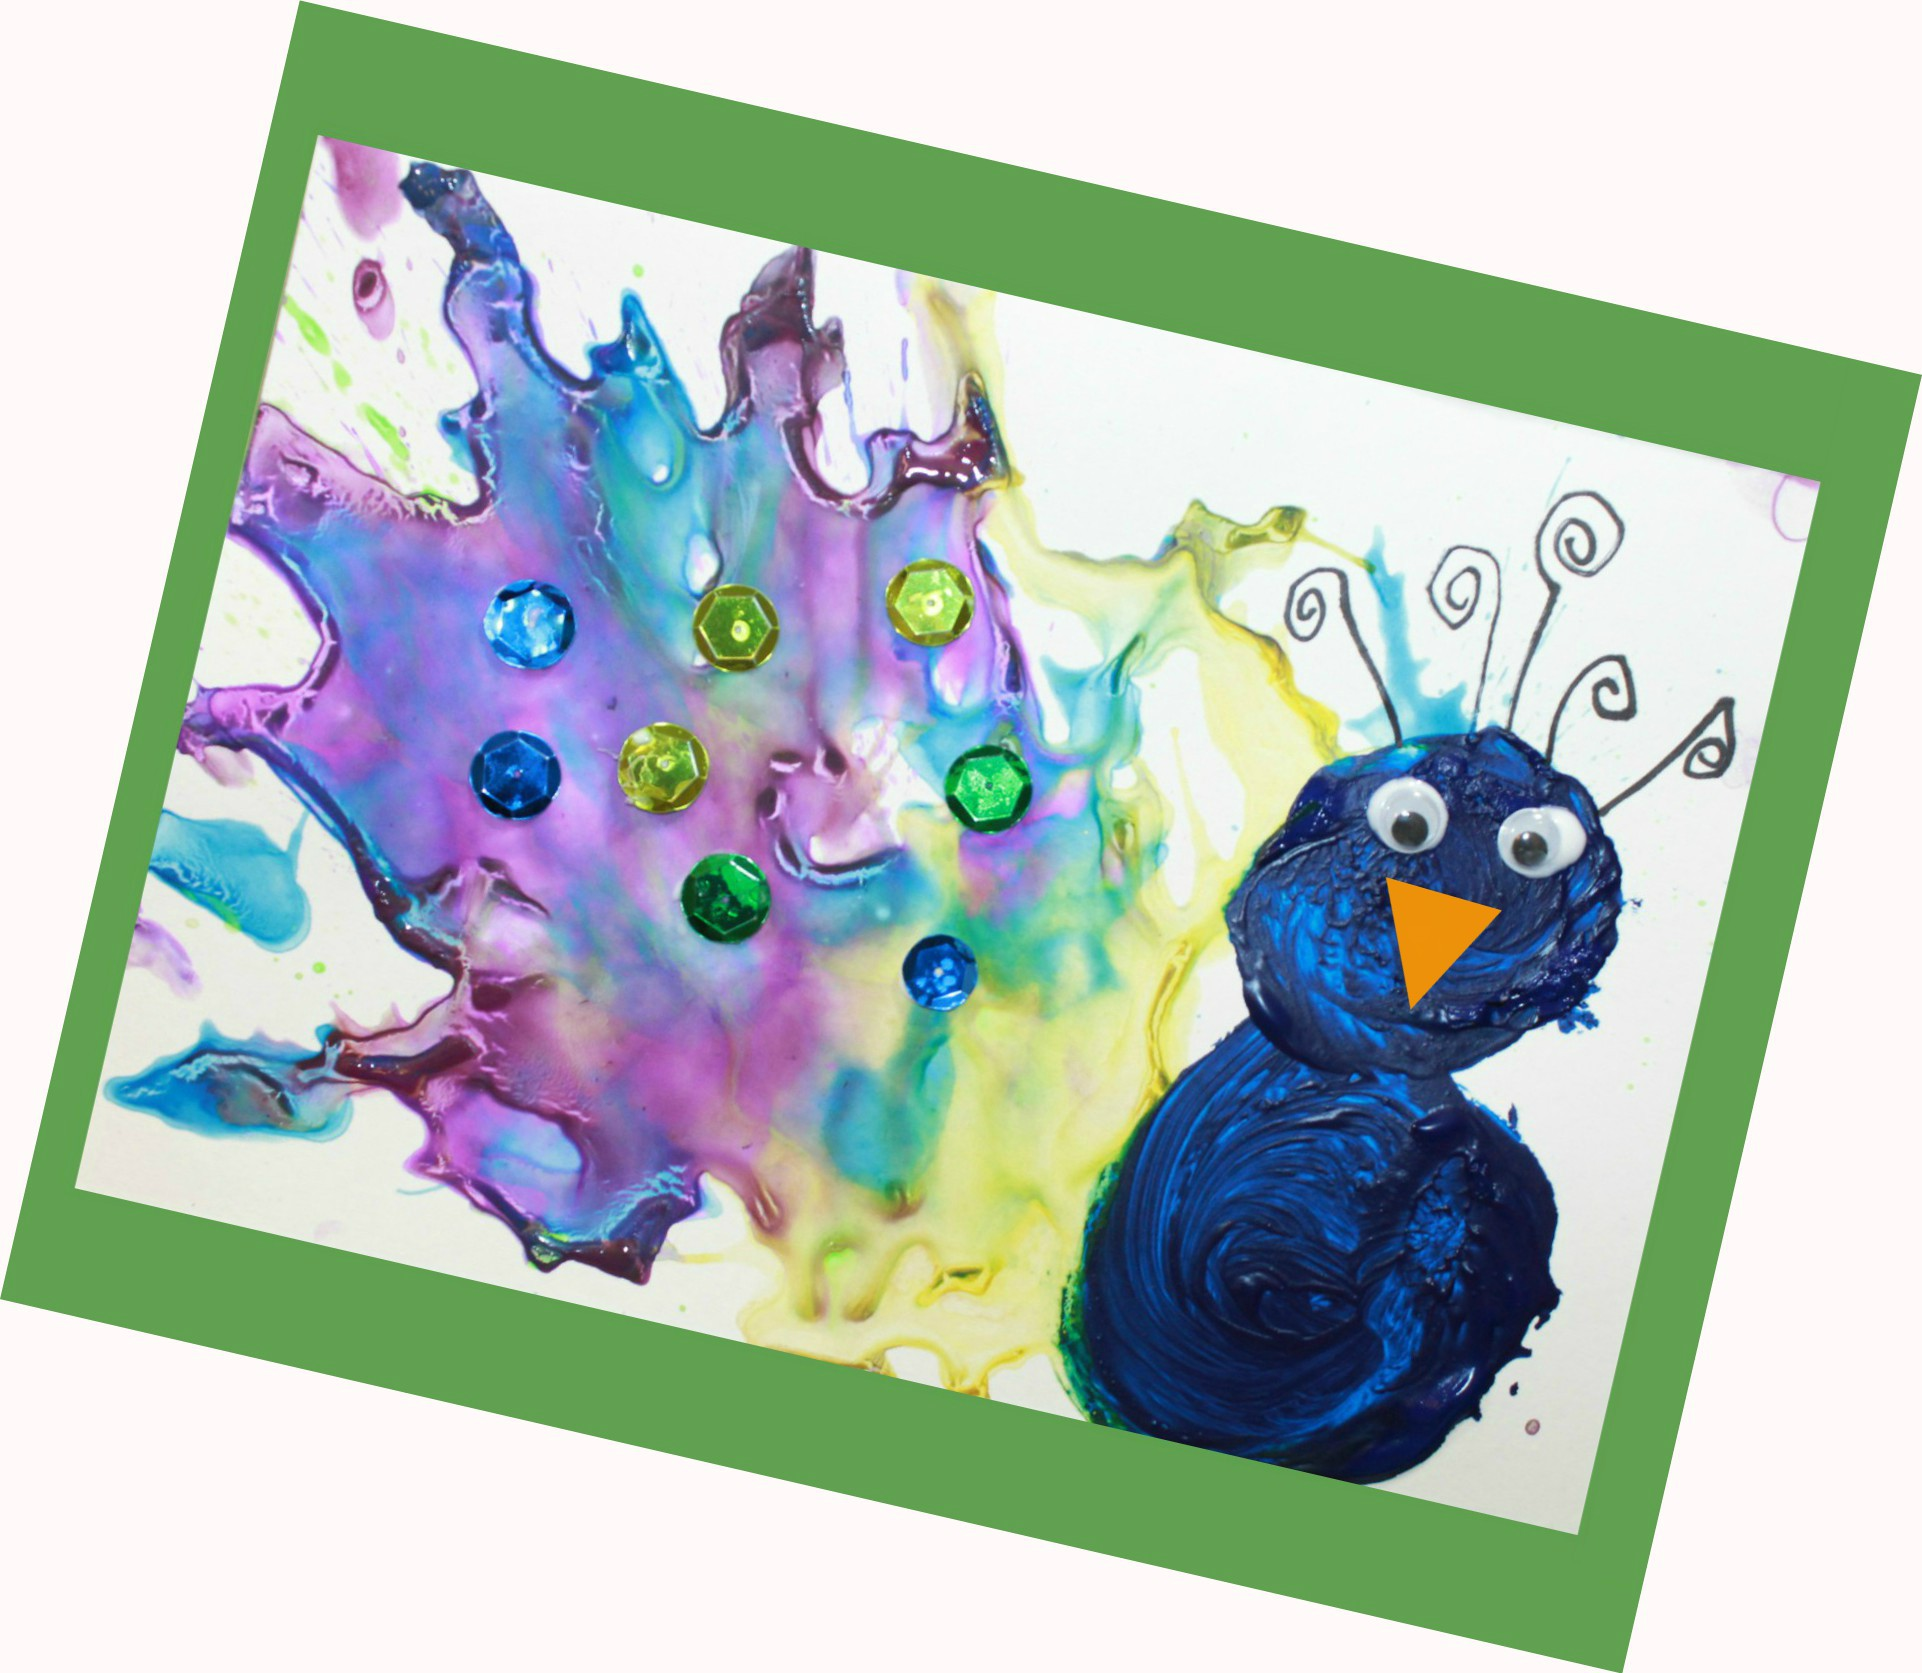 straw blown peacock painting fun kids arts and crafts projects blow painting is great